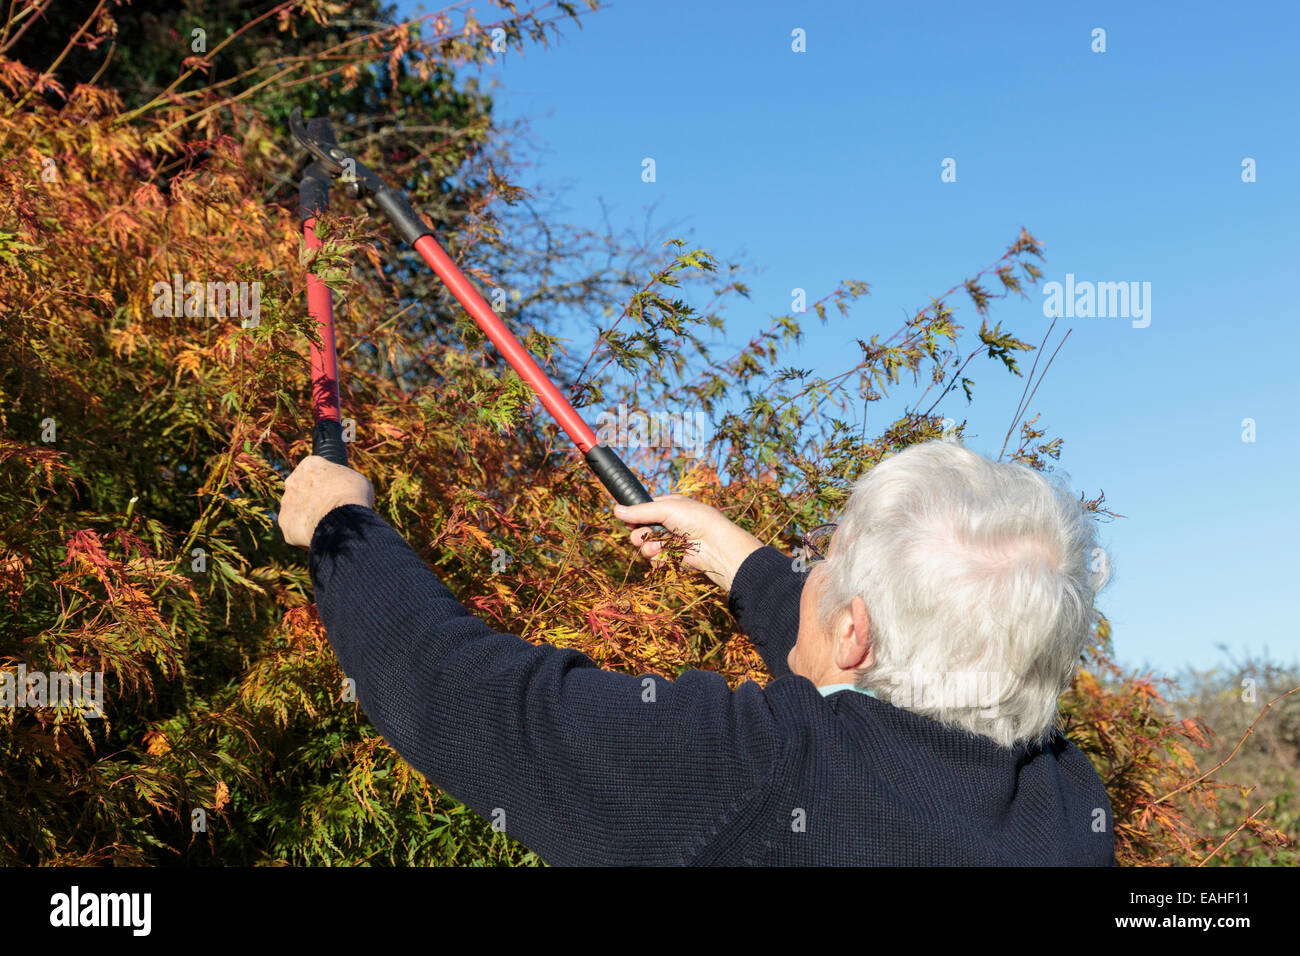 Senior woman gardening using loppers to cut back a garden bush in autumn, a household activity. England, UK, Britain. Stock Photo